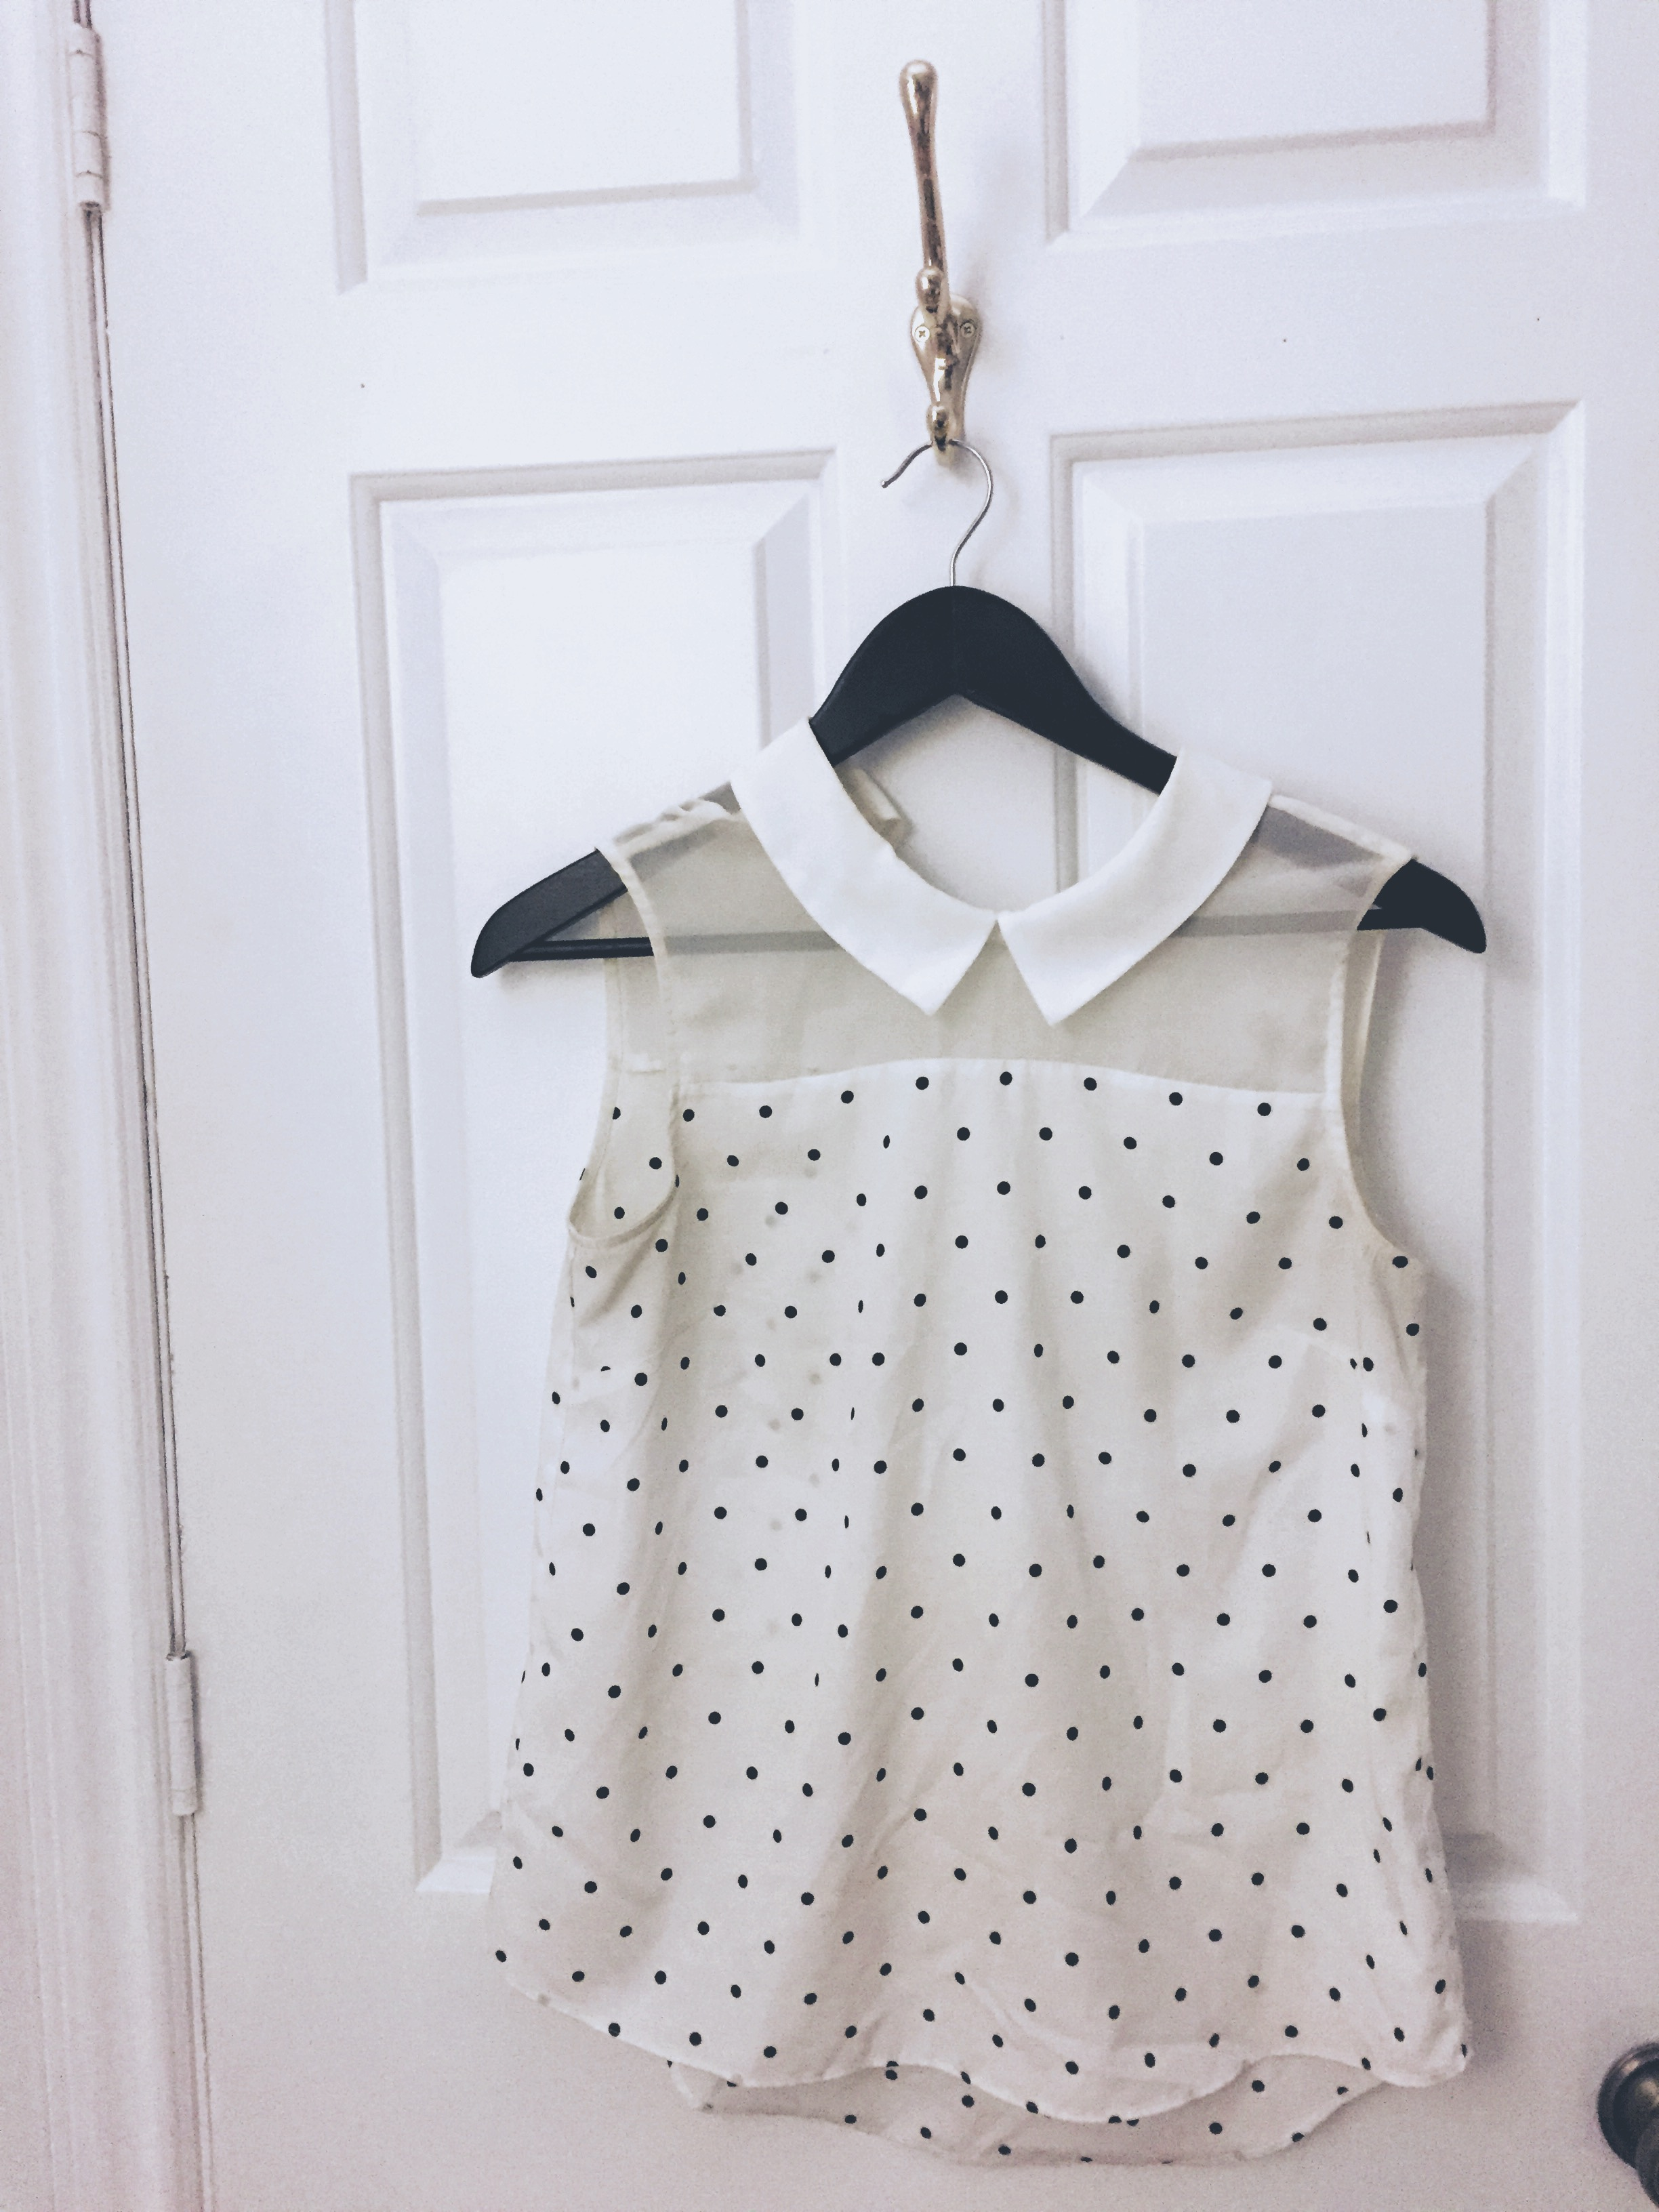 Polka Dot shirt From Hong Kong. Seen many theatre and rehearsal days. Completely stained in the arm pits and around the neck. A sad but warm goodbye.